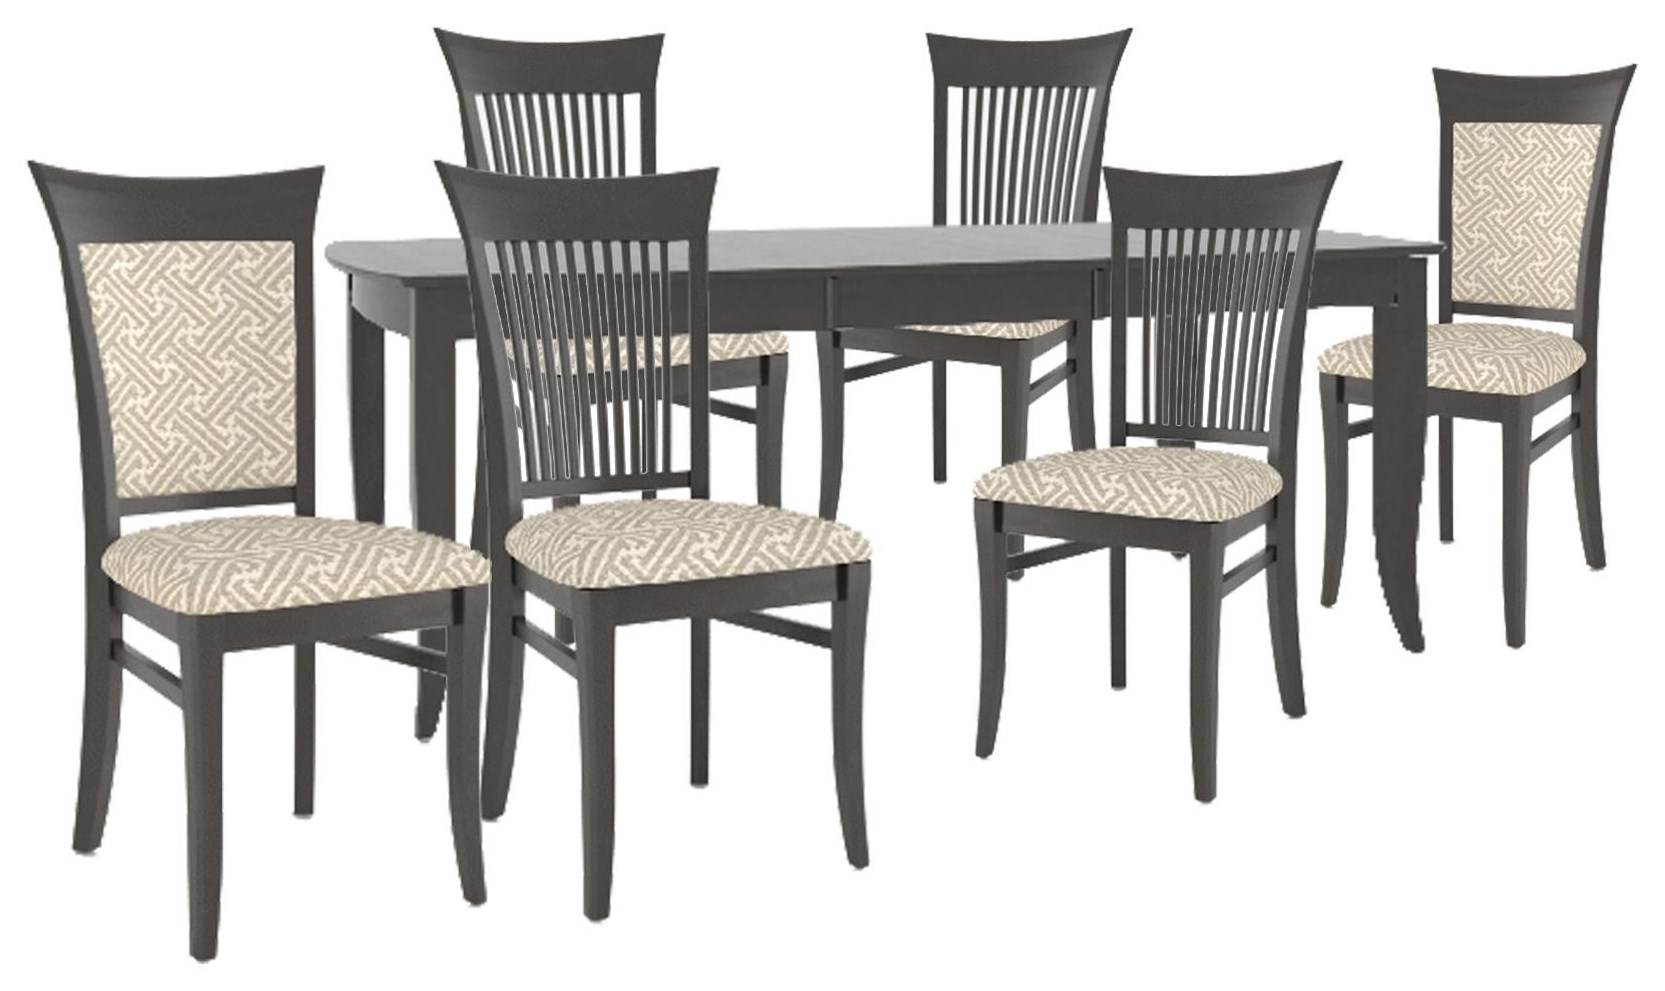 Custom Dining Table, Side Chairs, Upholstered Chairs by Canadel at Johnny Janosik